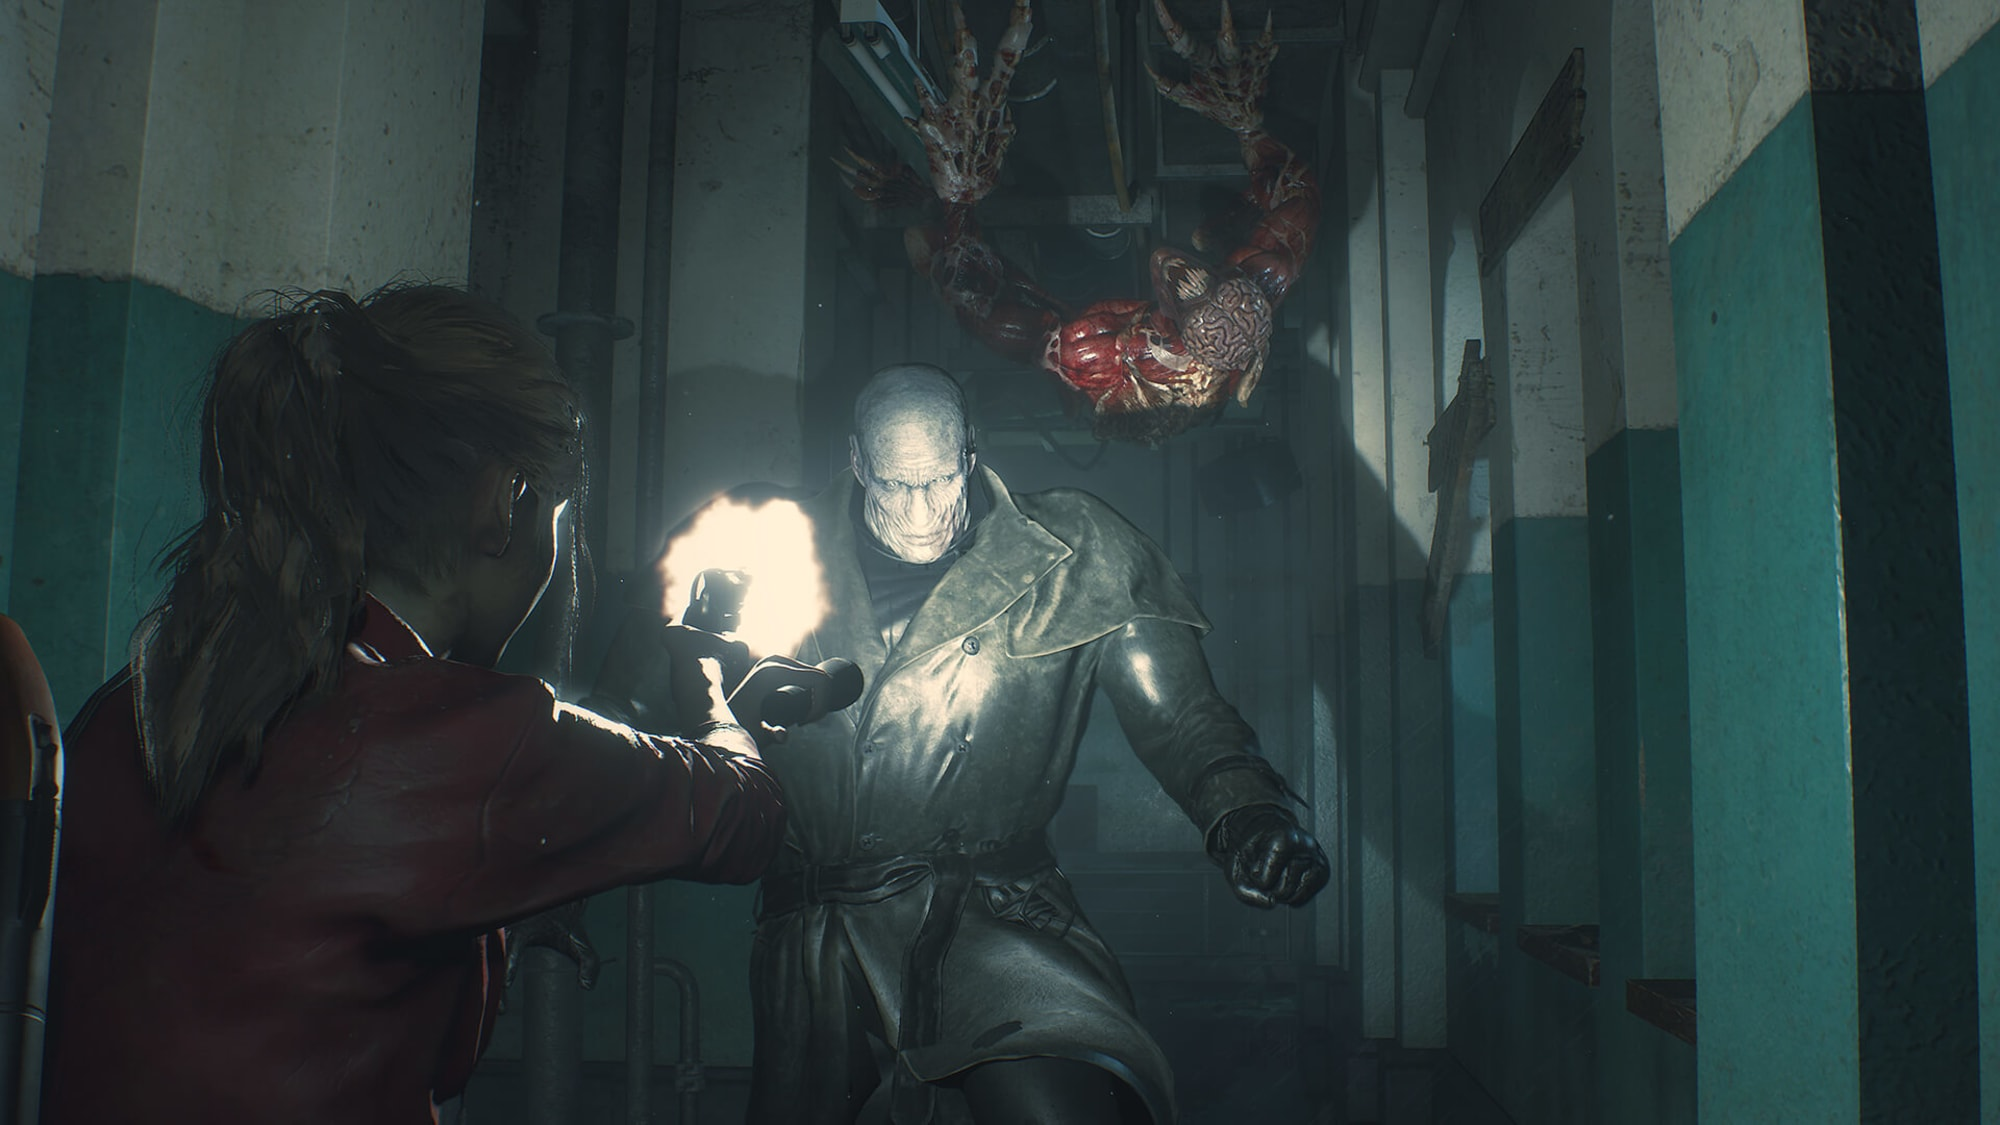 Resident Evil 2 S Mr X Tyrant Is Officially Pissing Off The Internet